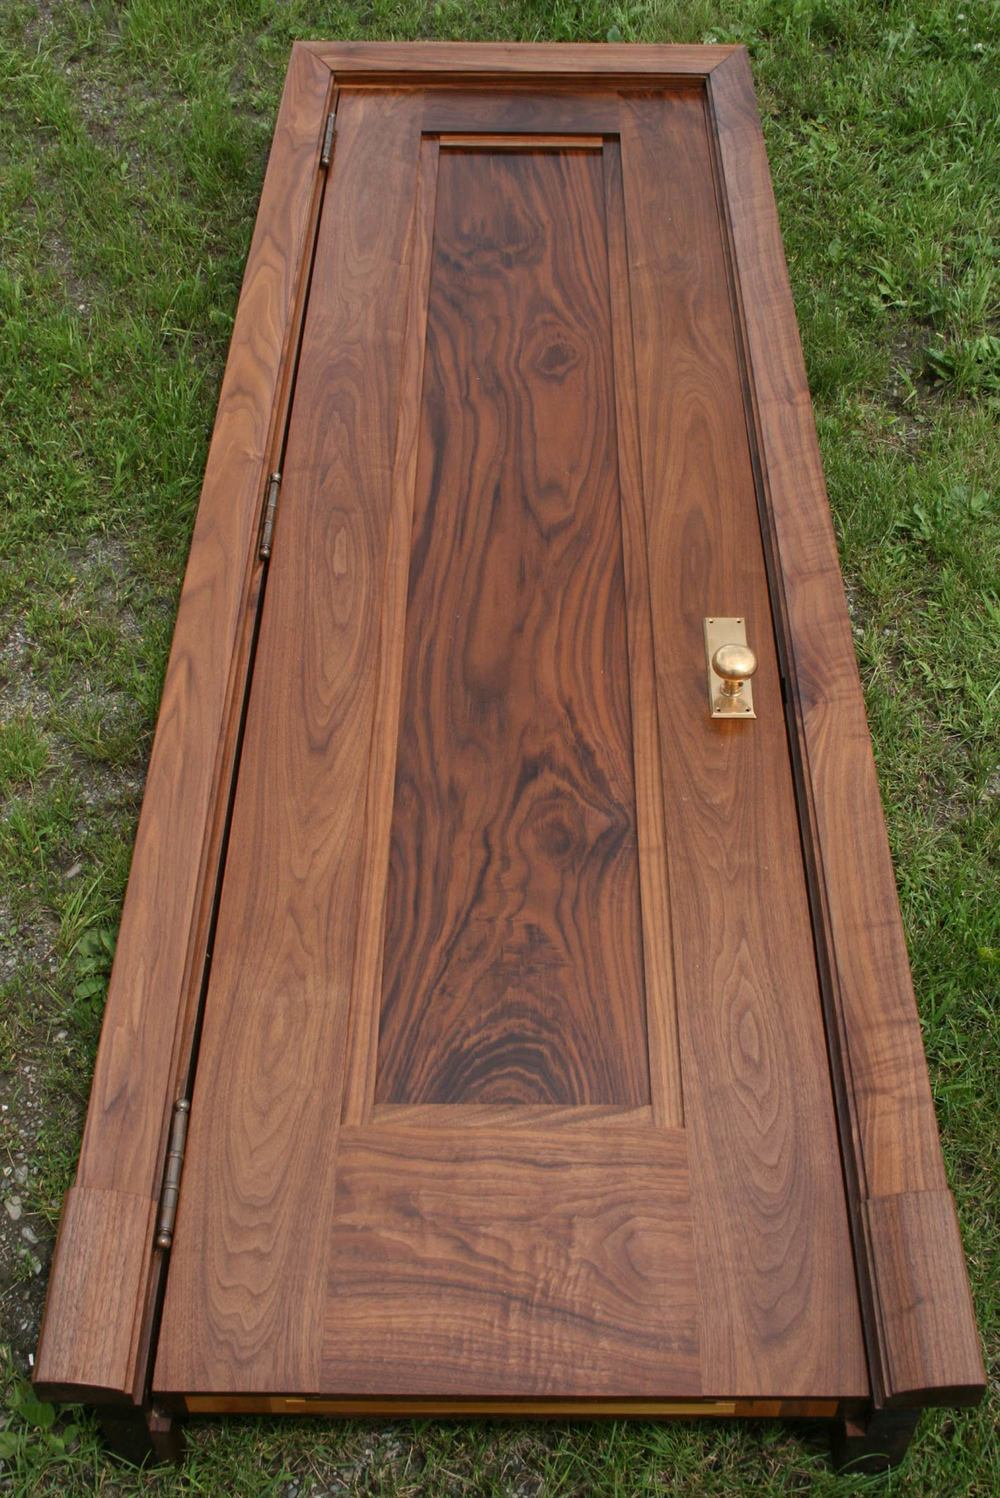 Whole walnut door built by Allan Shope